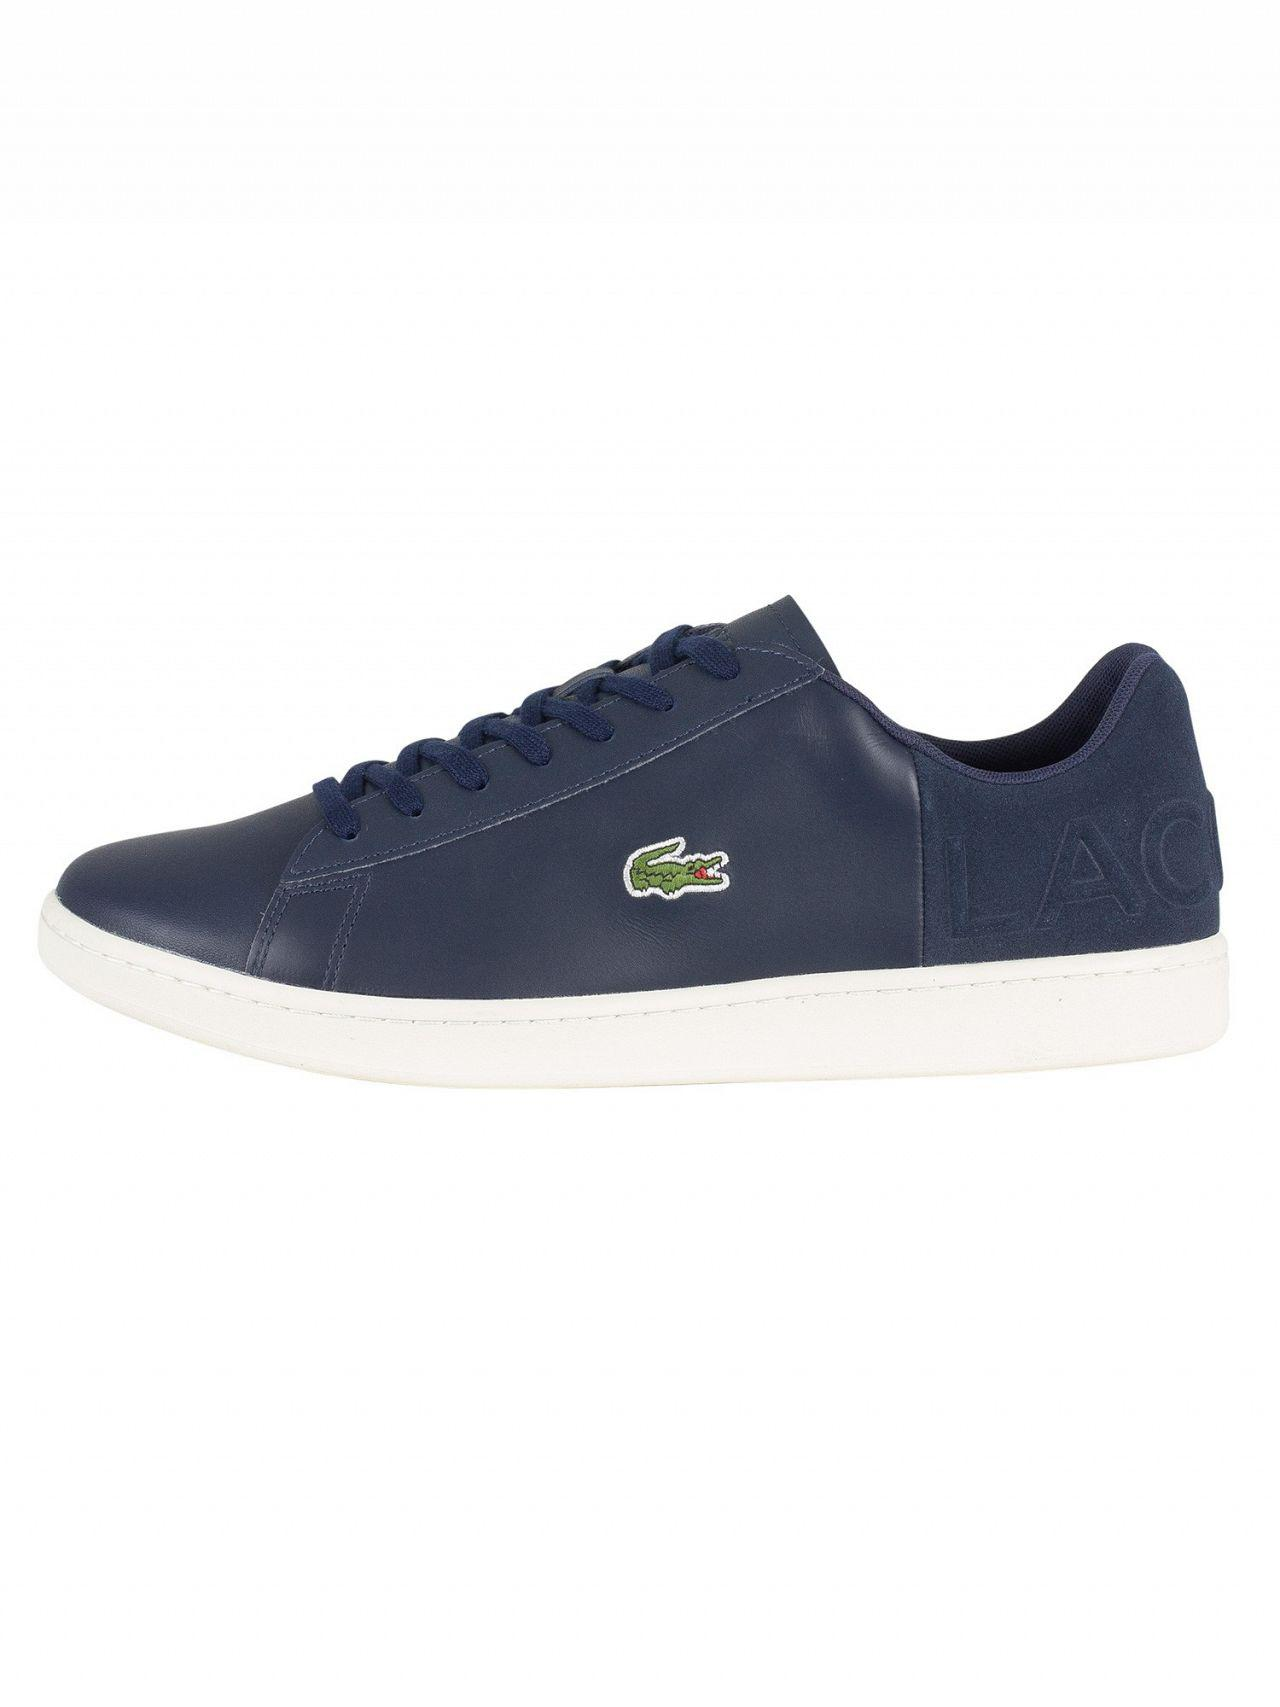 31e06430a40f71 Lacoste Navy off White Carnaby Evo 418 1 Spm Leather Trainers in Blue for  Men - Save 10% - Lyst